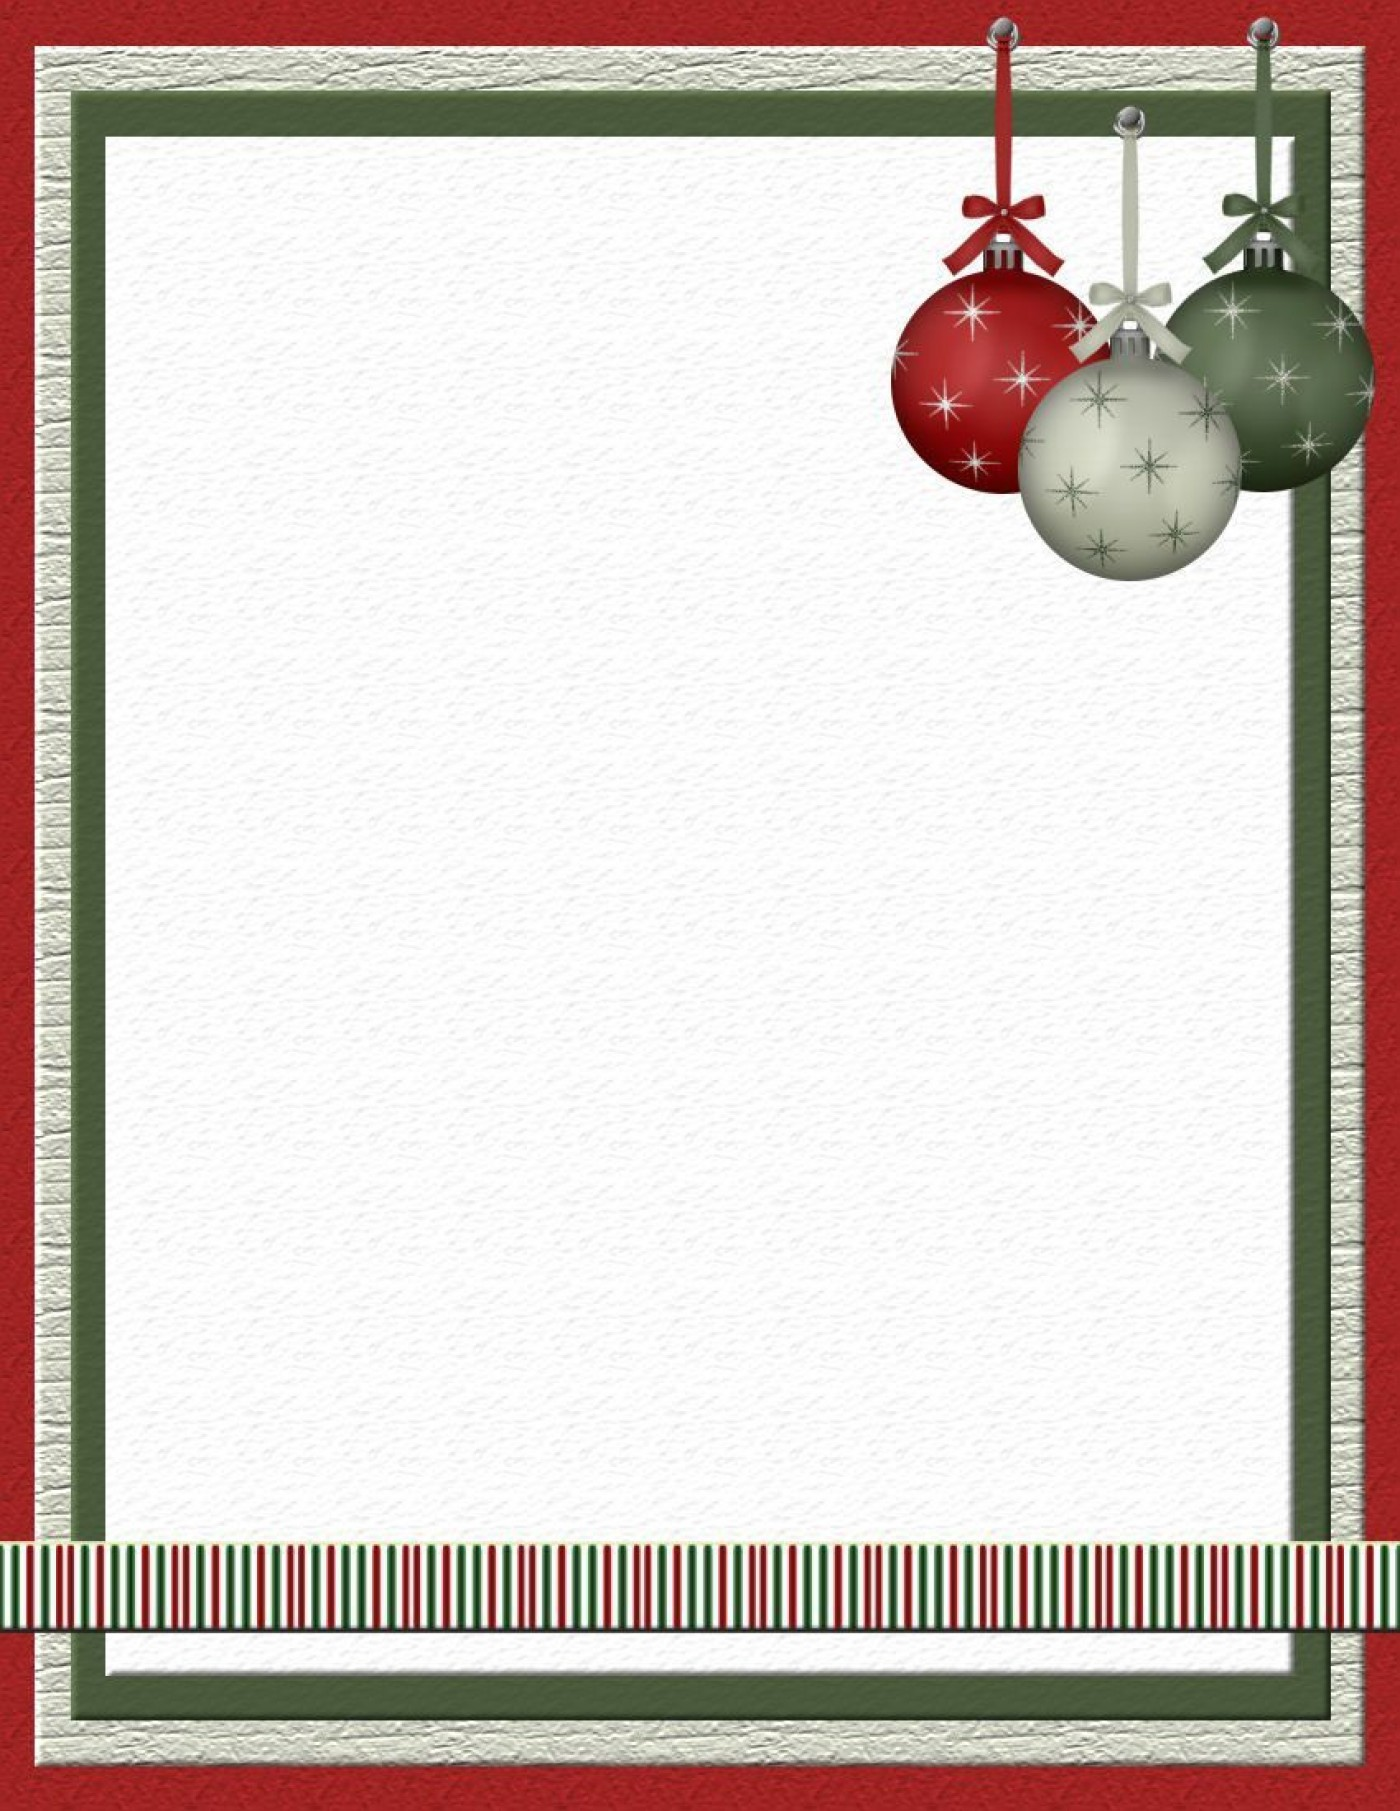 003 Amazing Christma Stationery Template Word Free High Resolution  Religiou For Downloadable1400